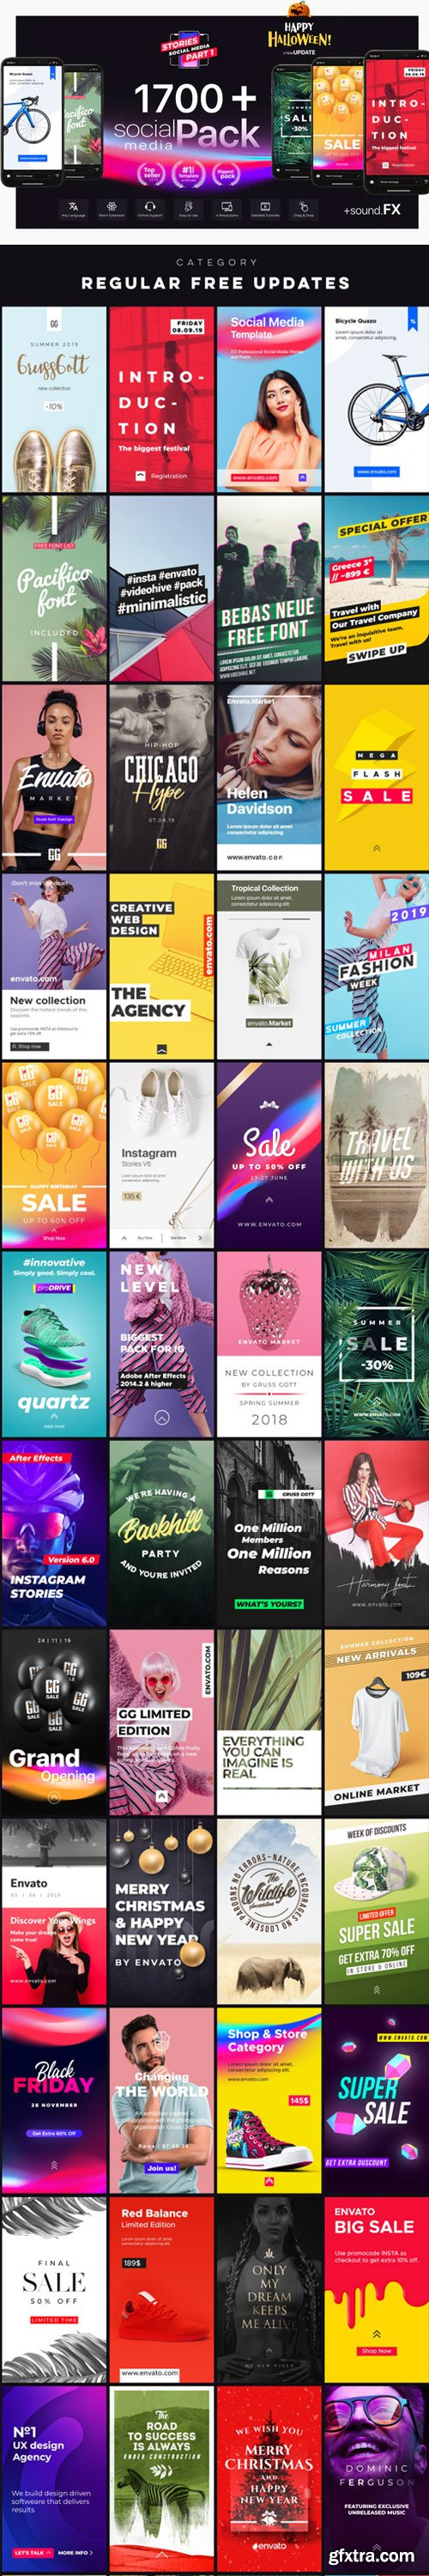 Videohive - Instagram Stories - 21895564 - v6.2